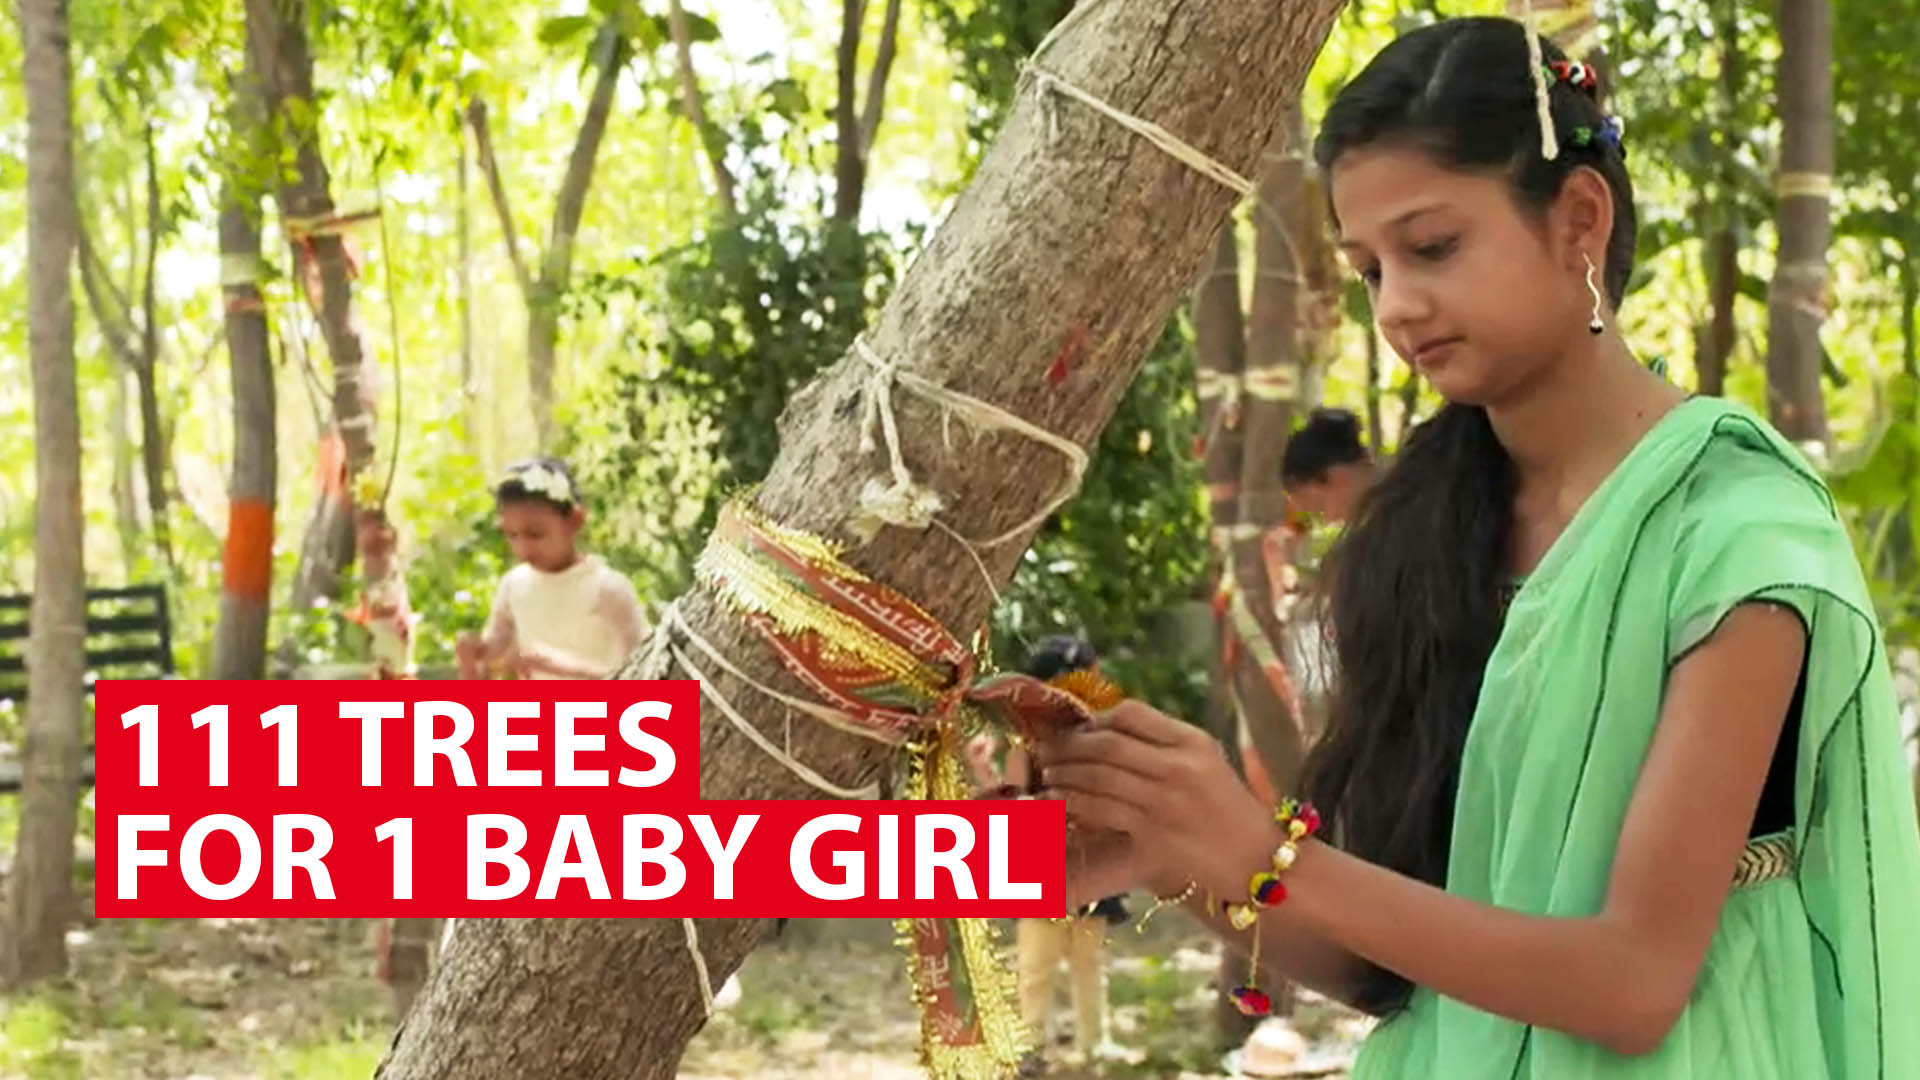 111 trees for 1 baby girl